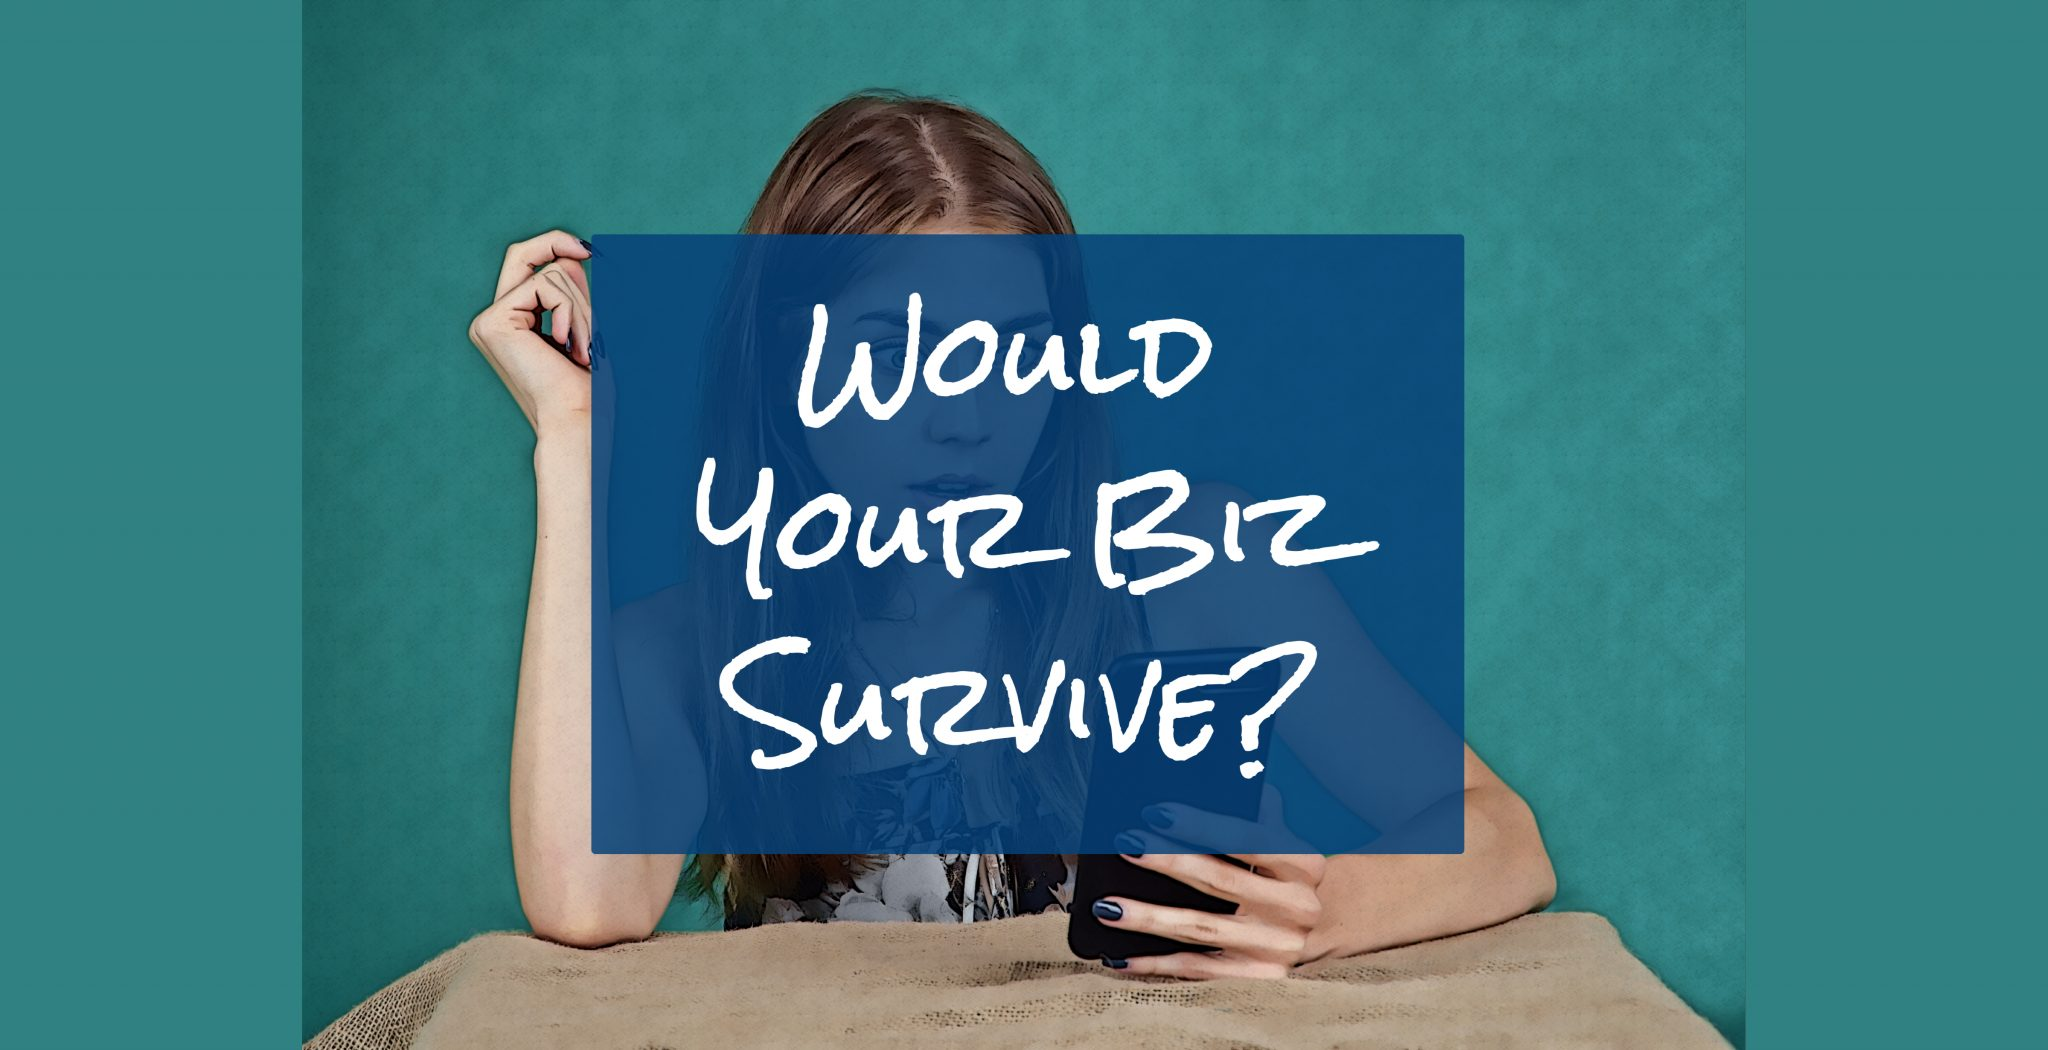 Would your business survive if Social Media disappeared? 2